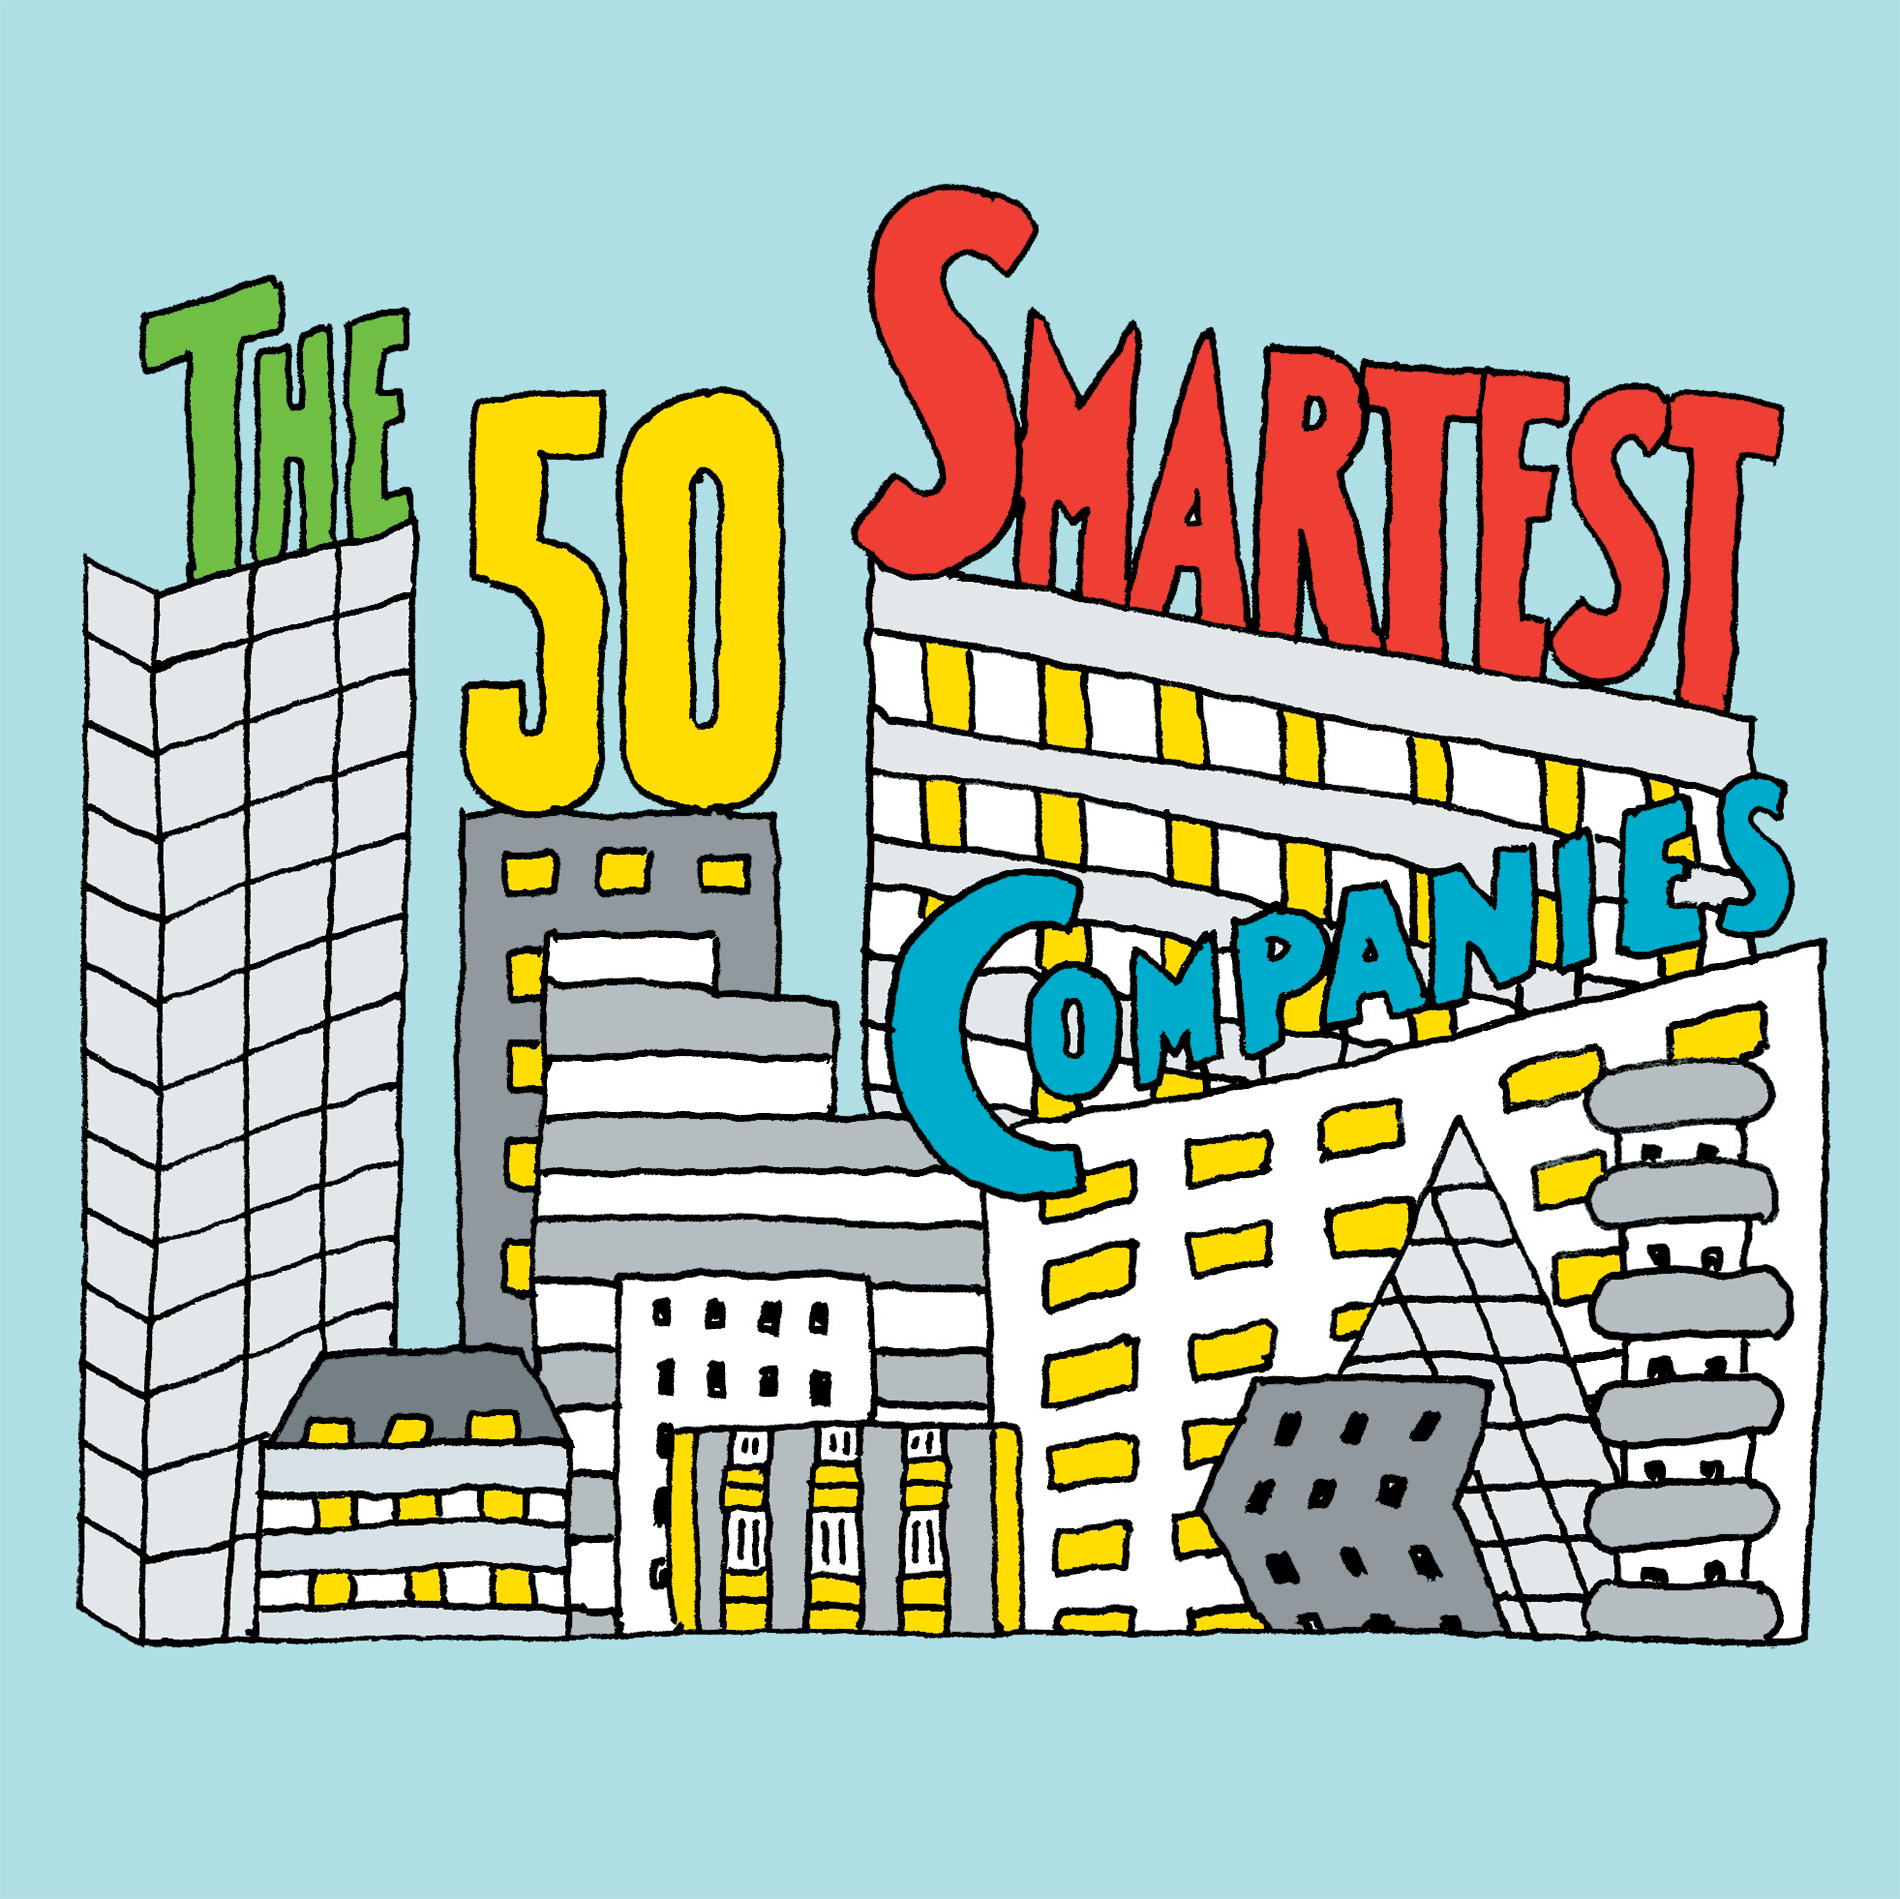 50 Smartest Companies 2015 - MIT Technology Review